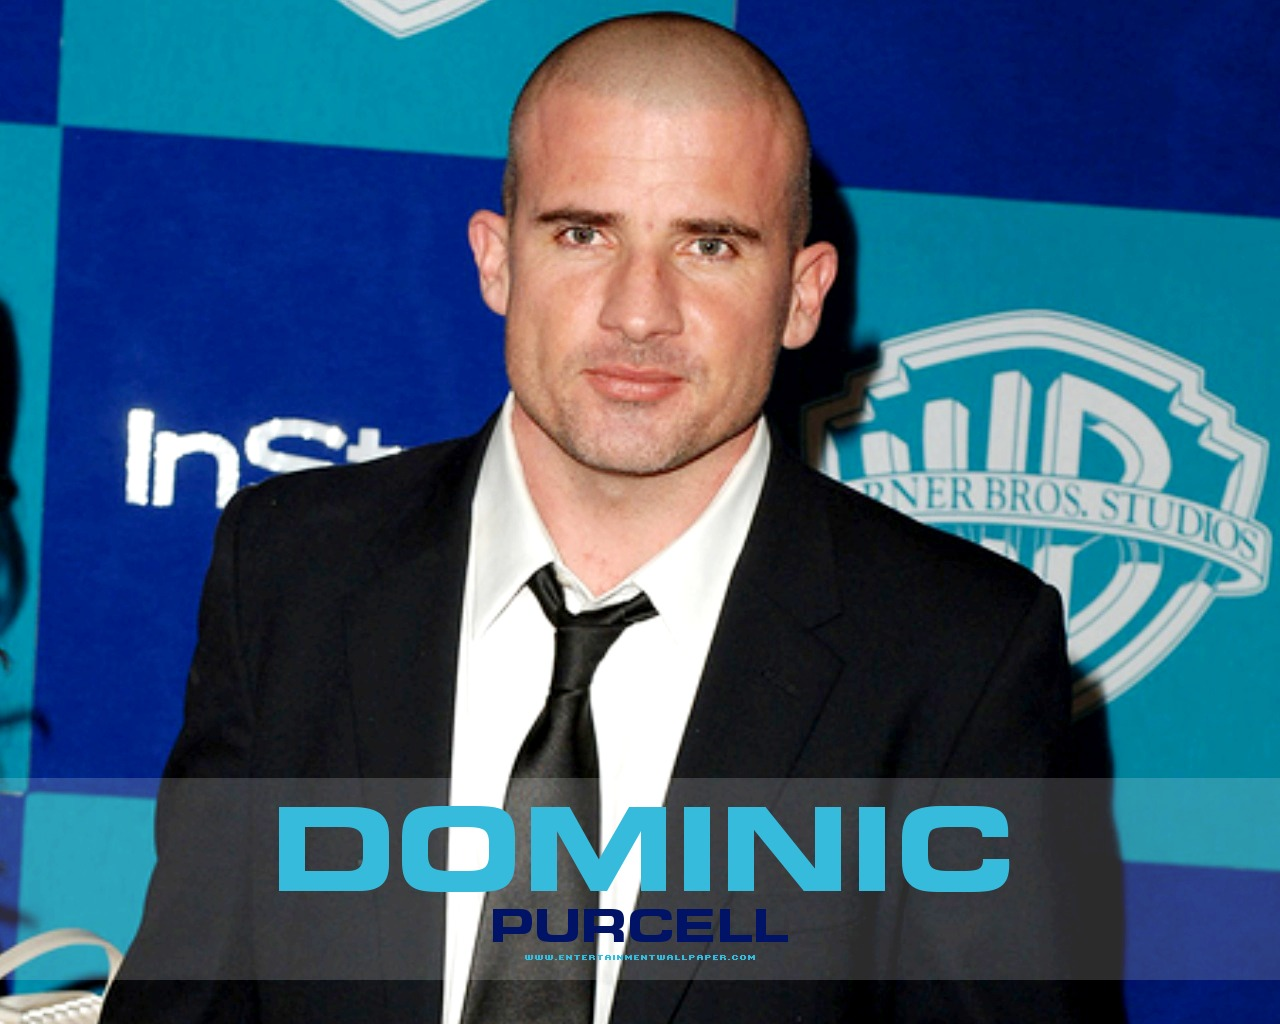 Dominic Purcell - Wallpaper Hot